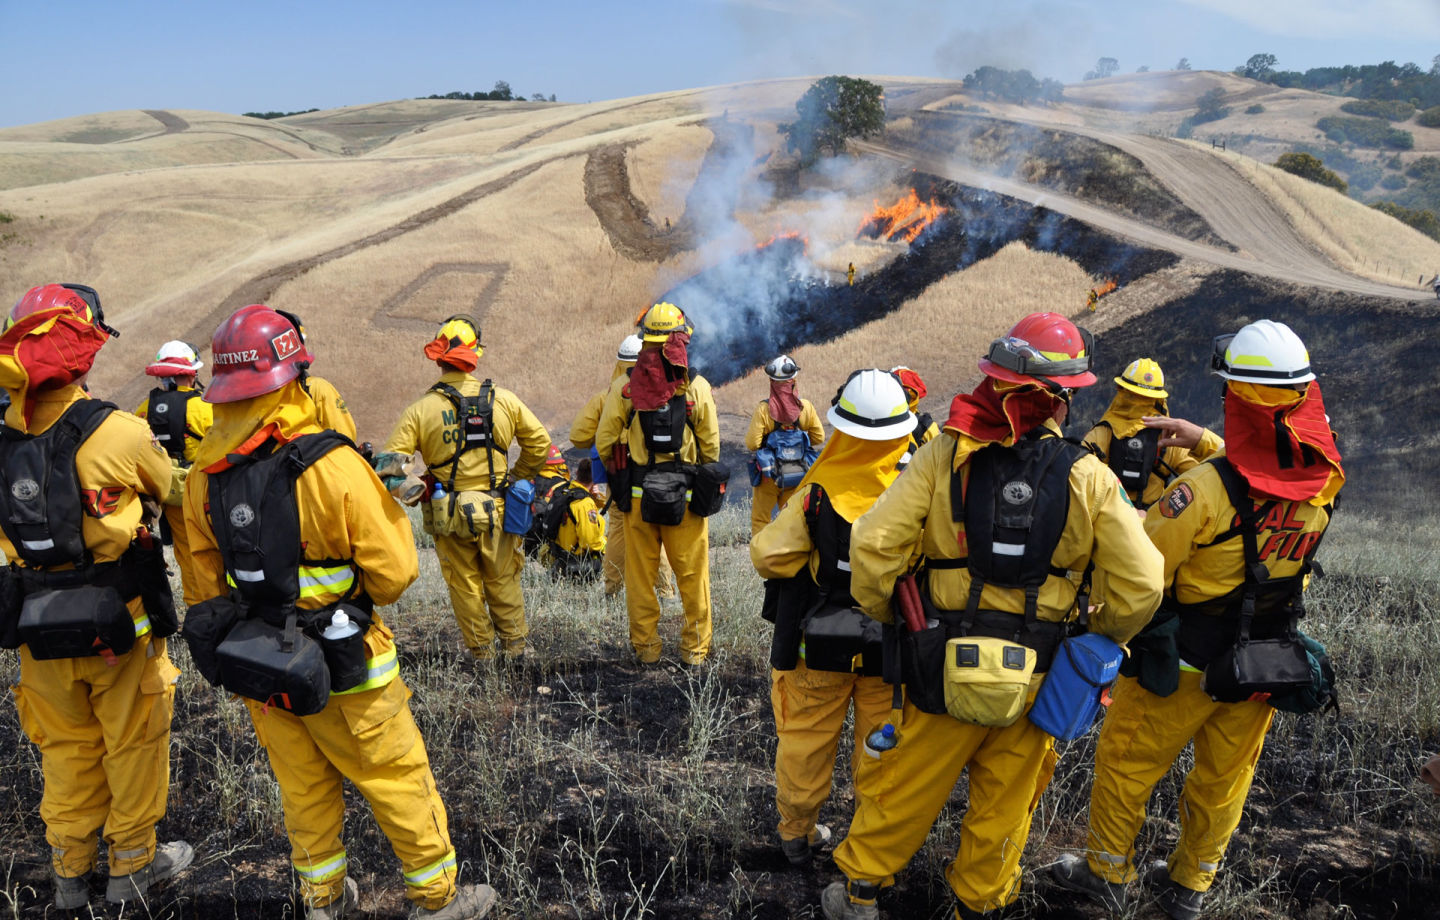 Students and instructors from Cal Fire participate in live fire drills during a week of intensive training designed to teach firefighting operations. Linnea Edmeier/KQED